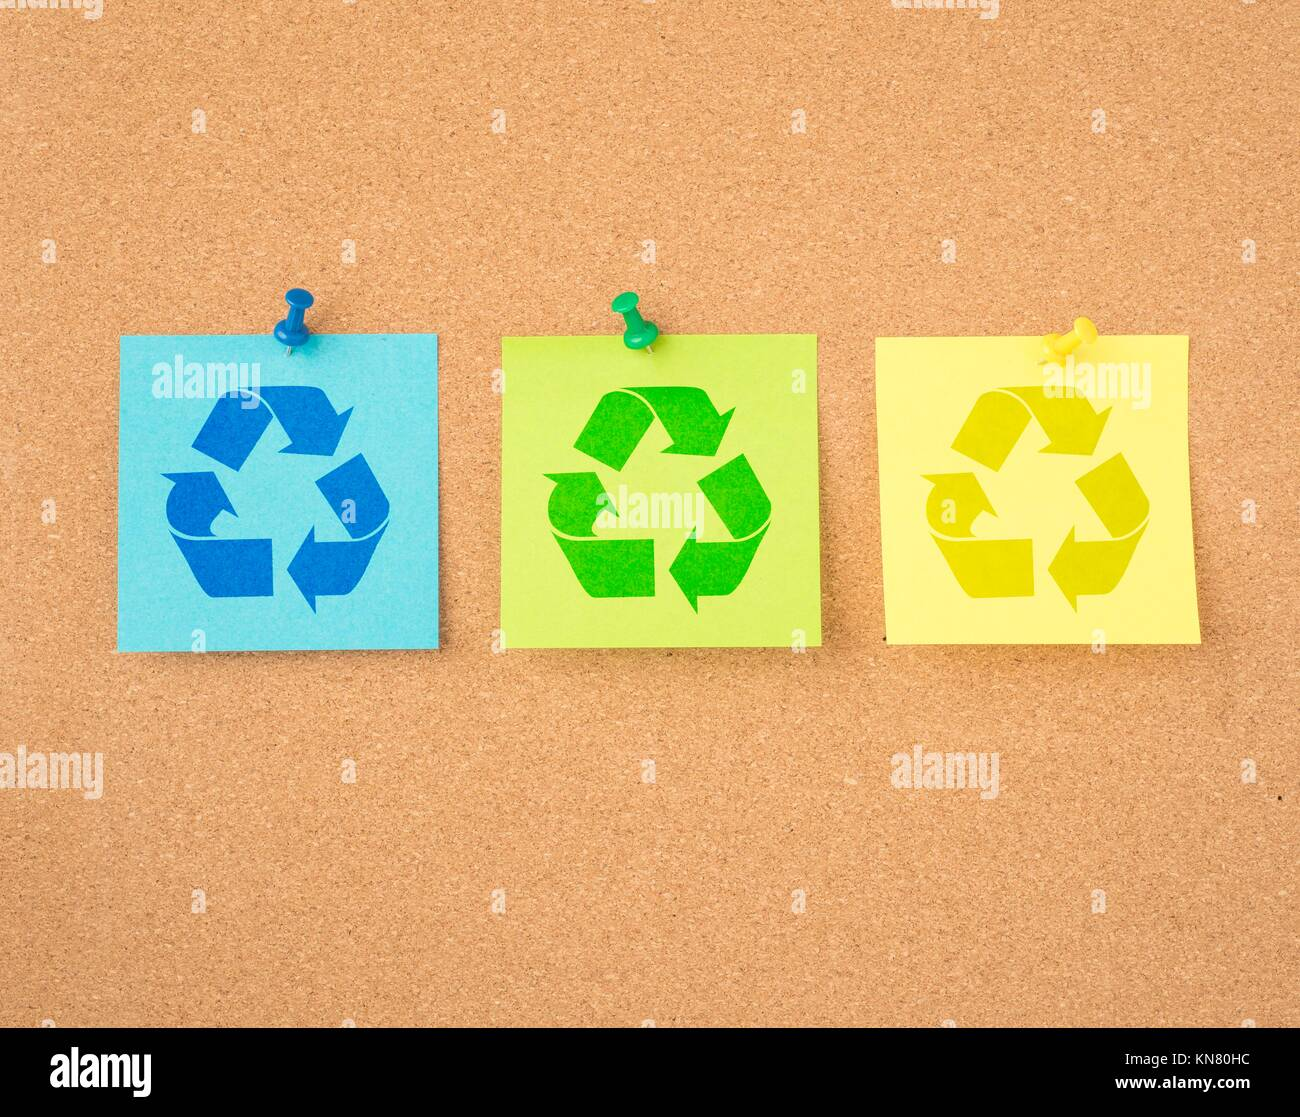 Recycling message stock photos recycling message stock images recycle symbol on paper pinned to message board reminder of recycling and green lifestyle biocorpaavc